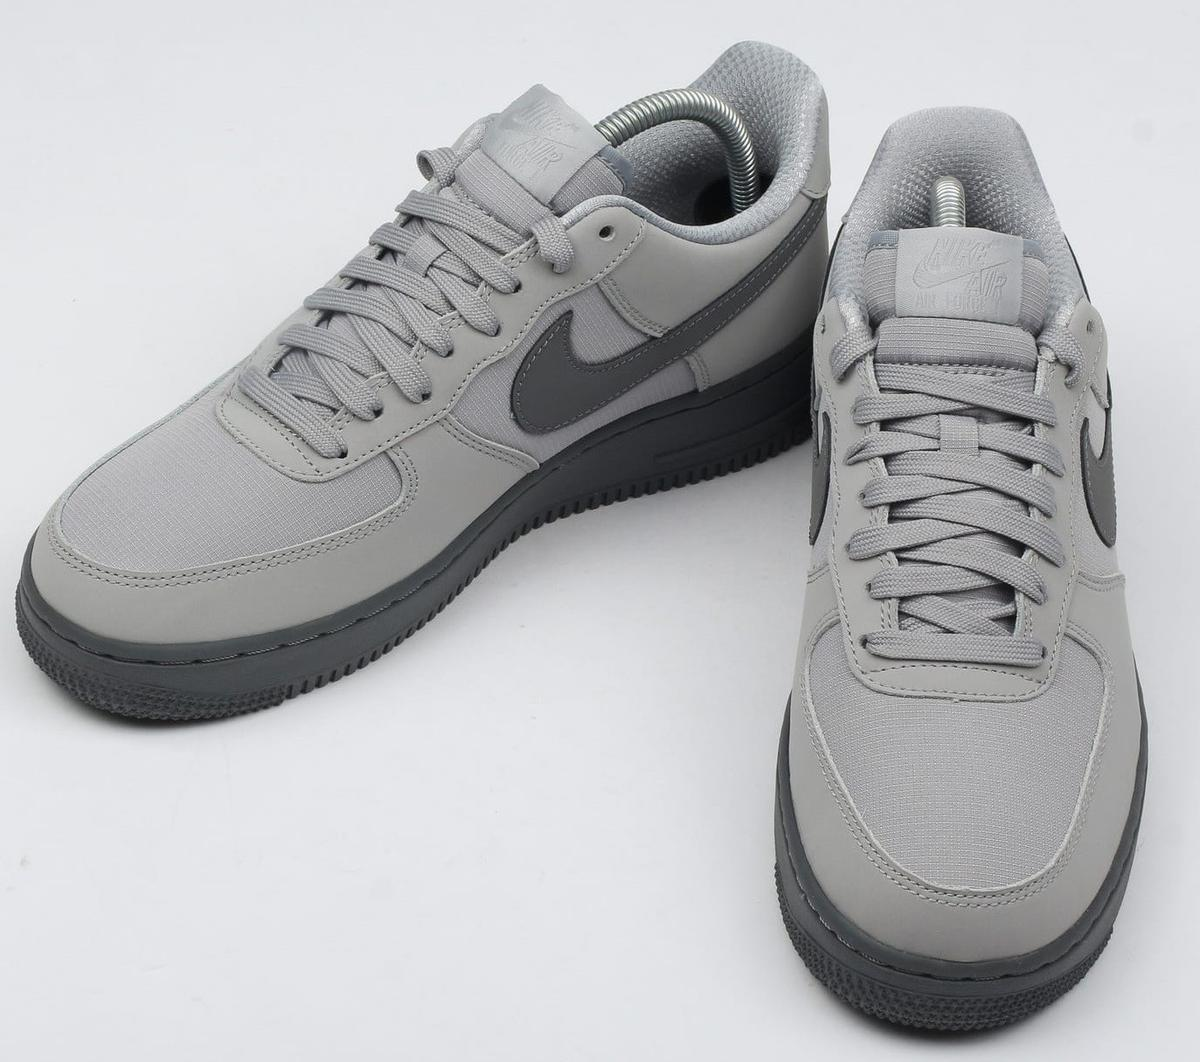 super popular ab7cf 4fe7b Description. Brand new 100% genuine. Size - 6 UK   40 Eu Colour - Wolf Grey    Cool Grey .